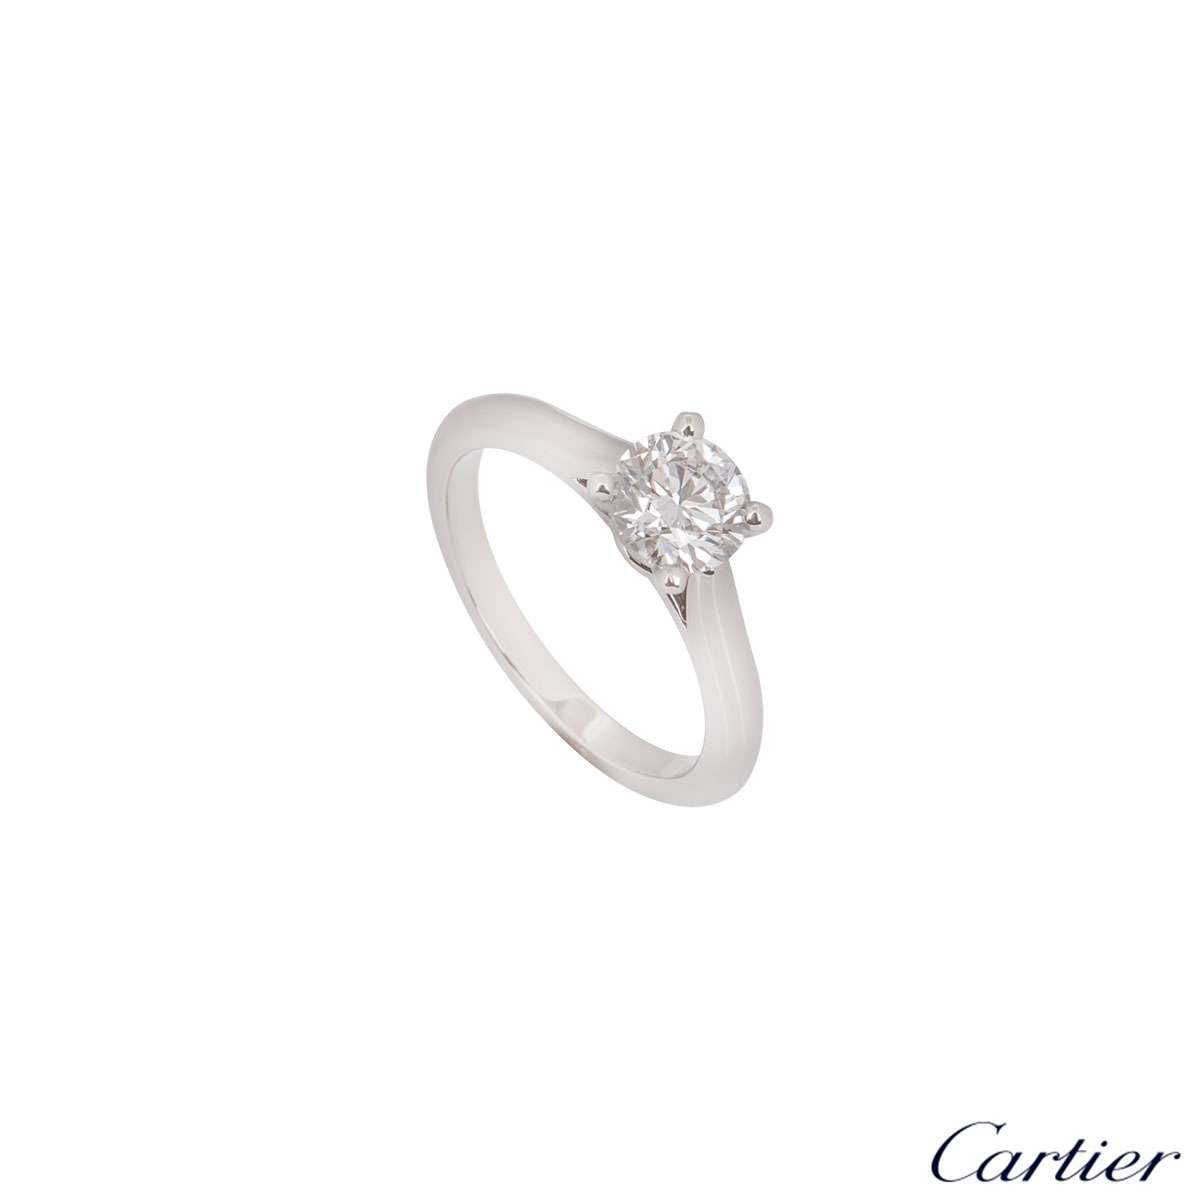 Cartier 1895 Platinum Diamond Ring 1.10ct F/VS1 XXX N4162955